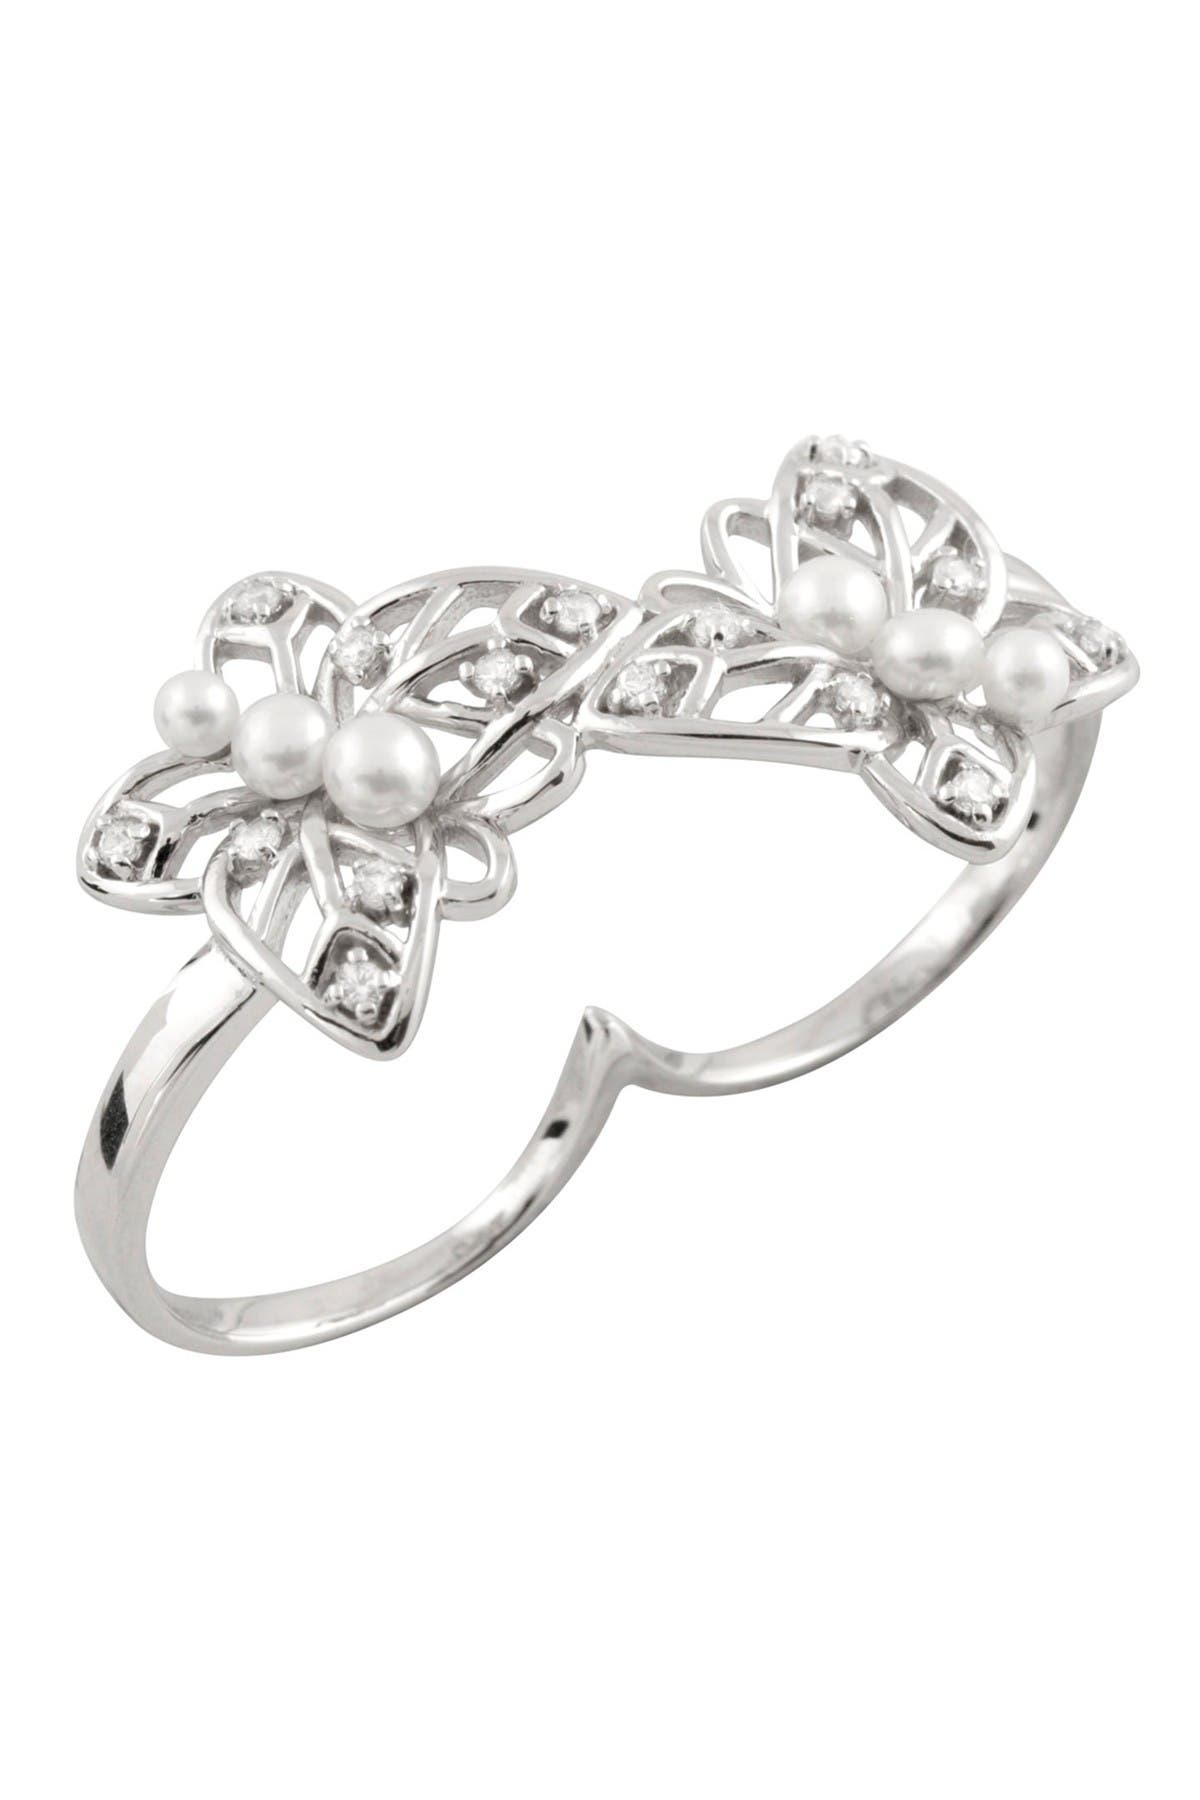 Image of Splendid Pearls Leaf Freshwater Pearl Two Finger Ring - Size 7